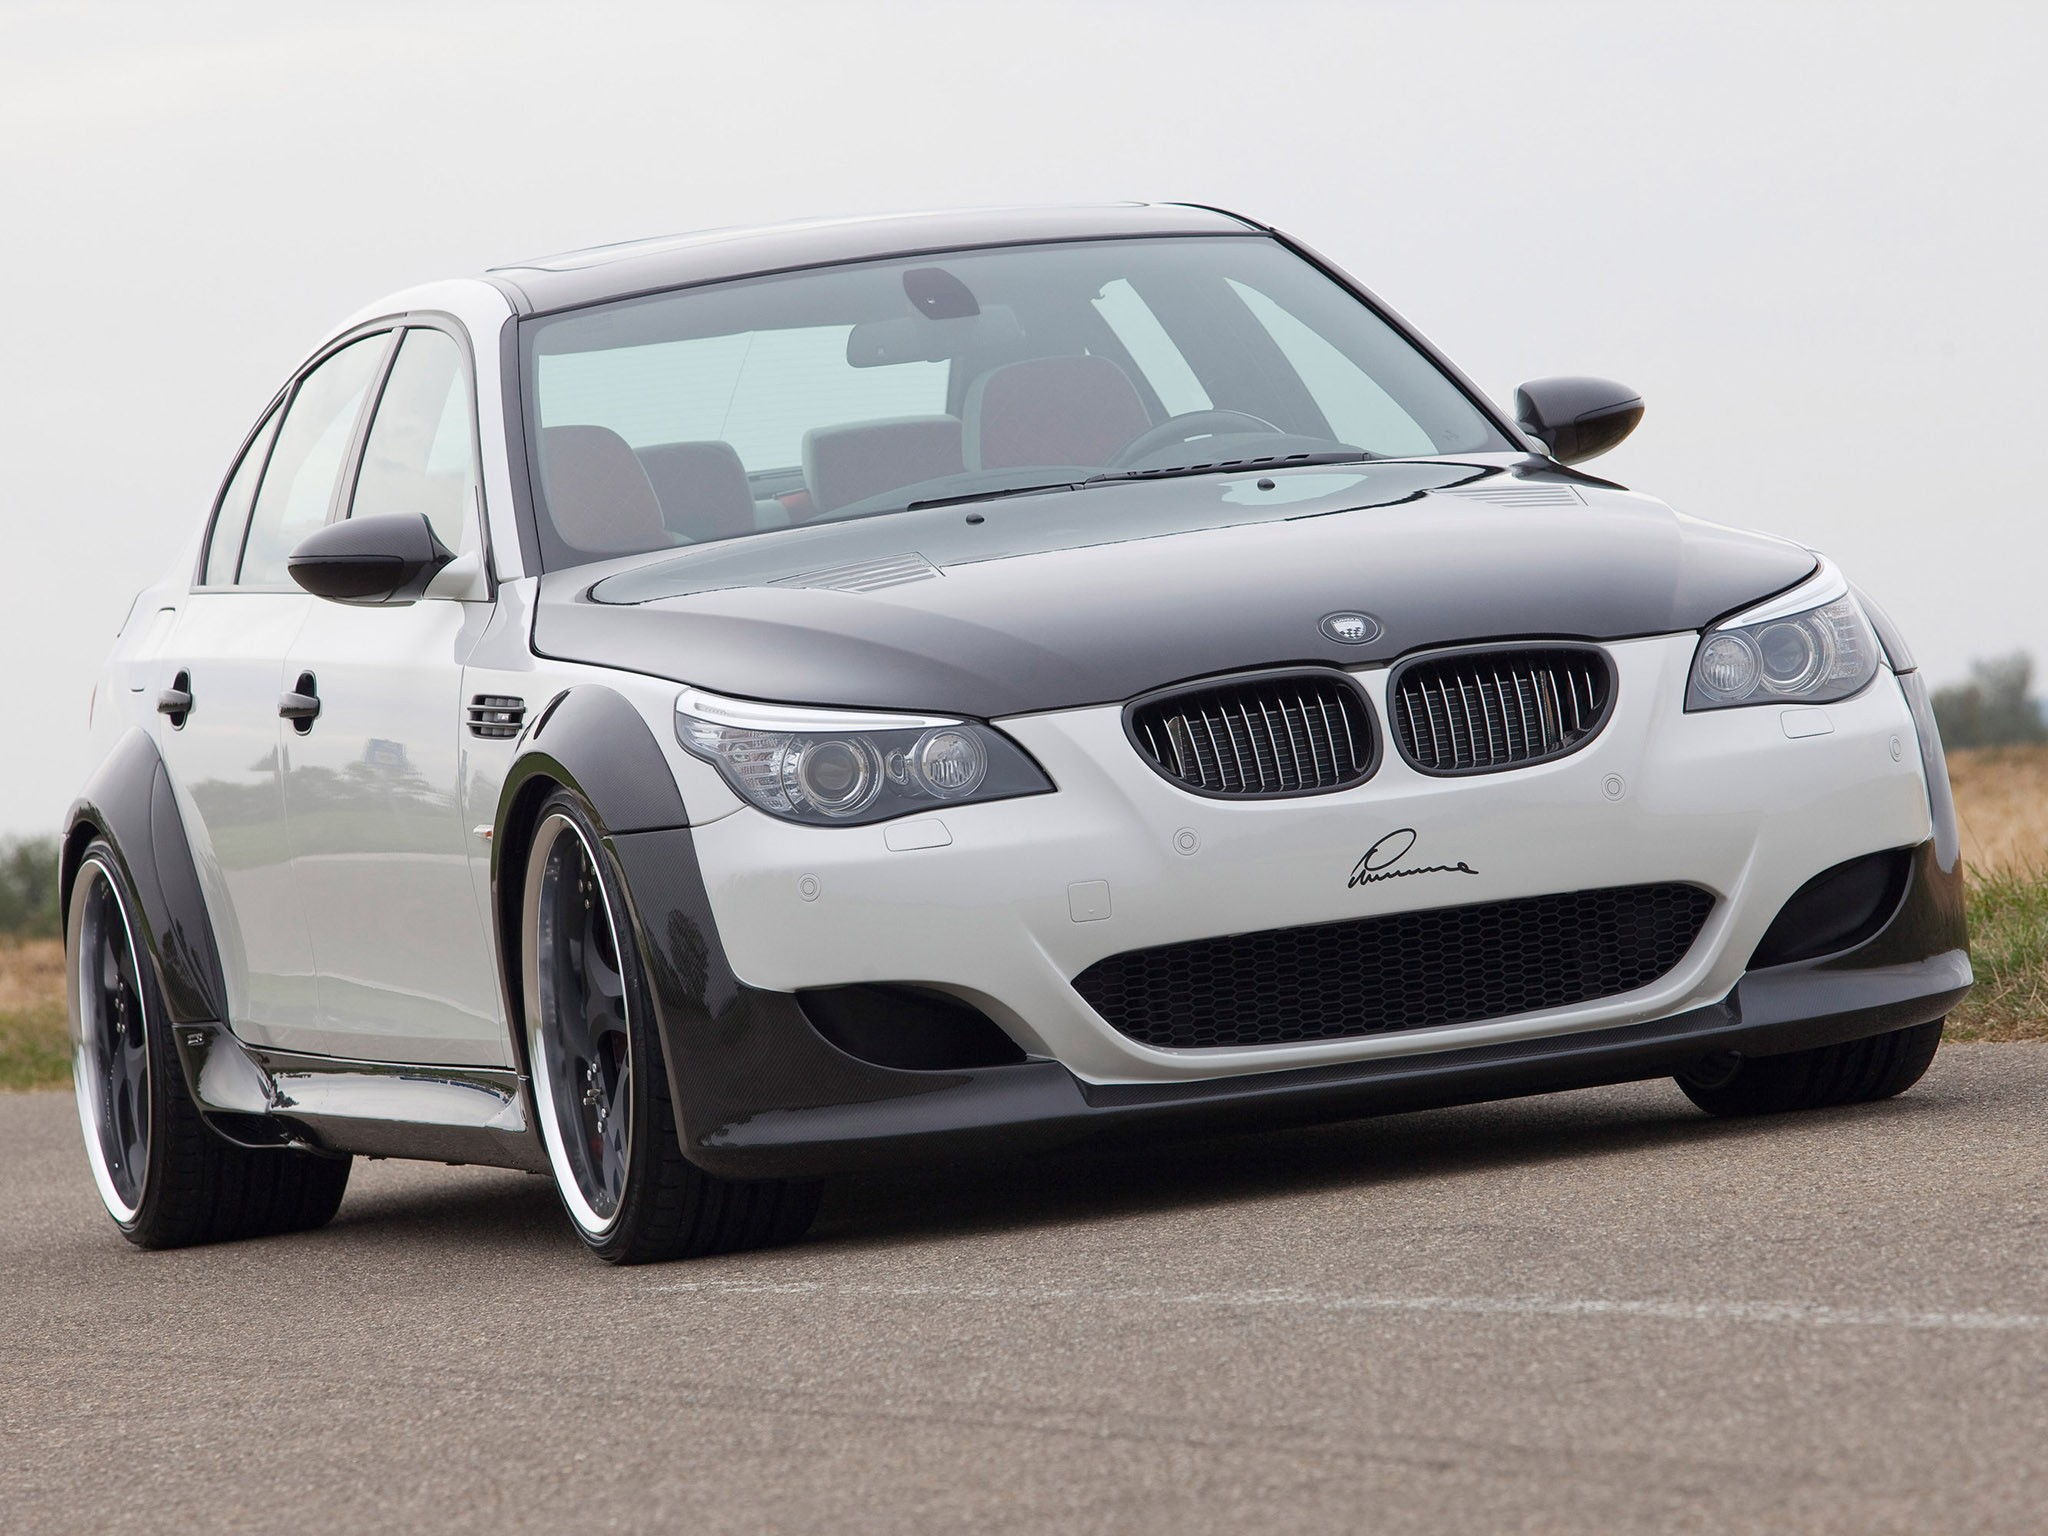 2009 Lumma Design - Bmw 5 Series CLR 730 RS